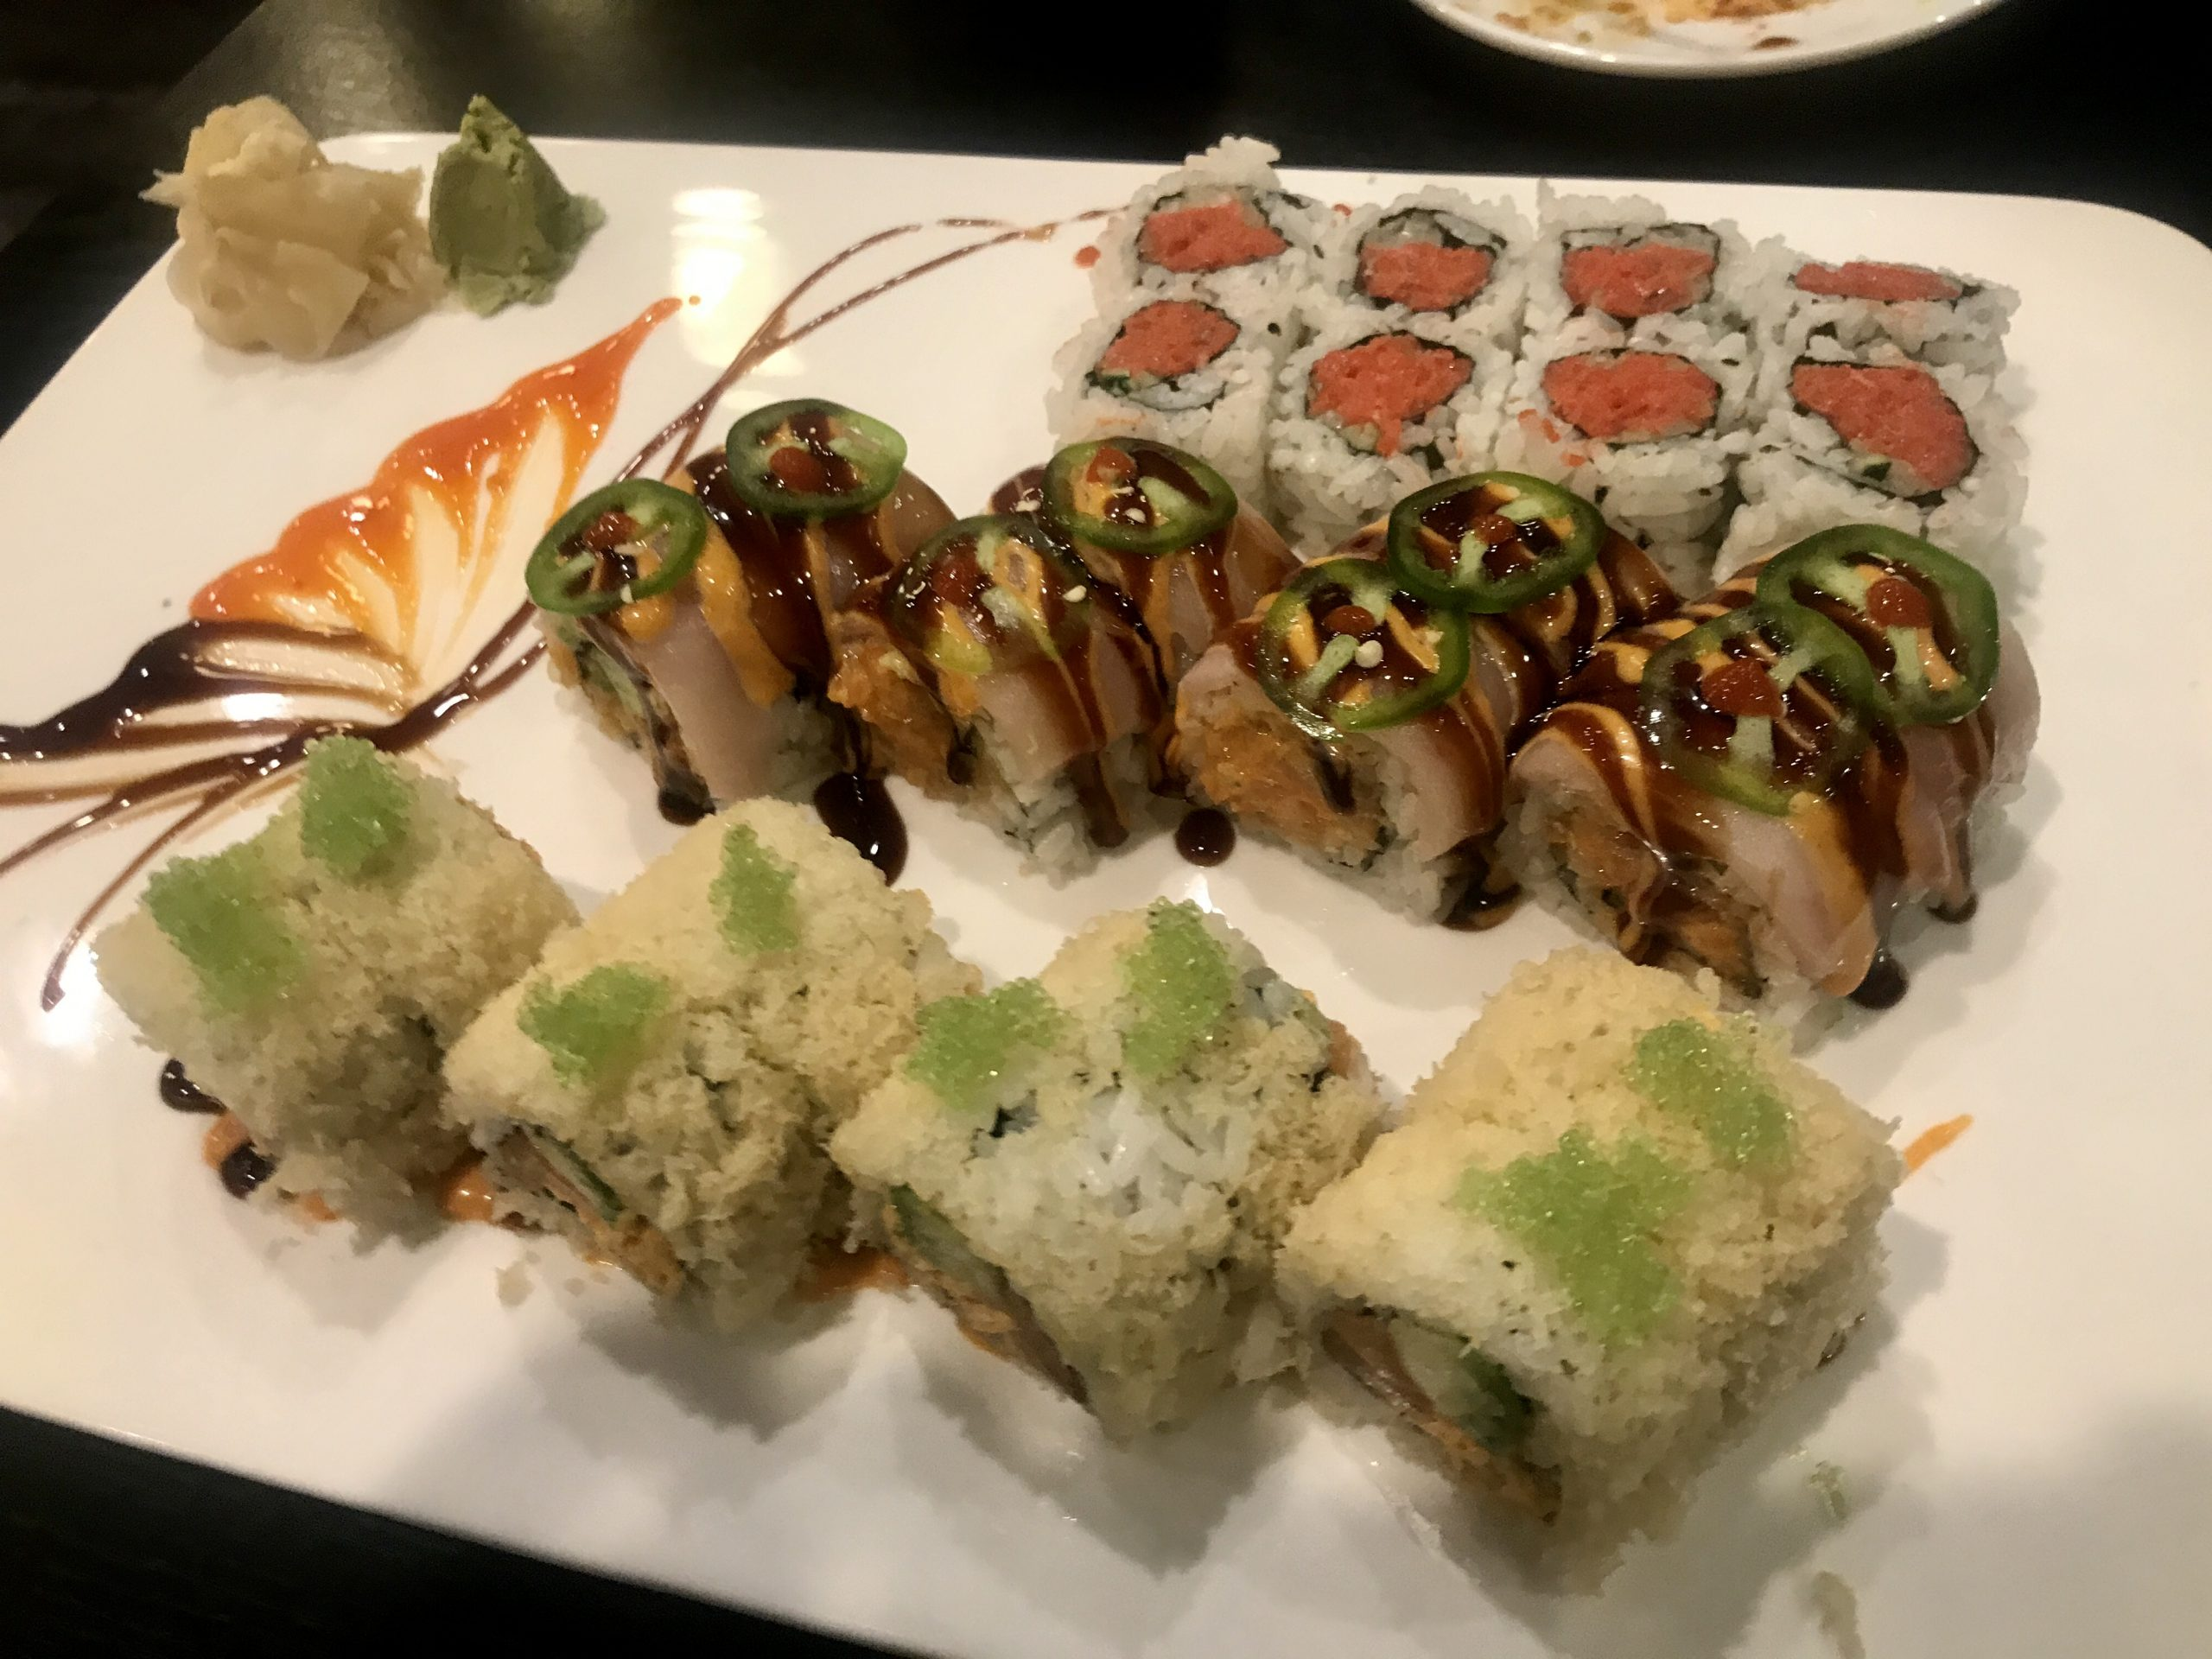 Sushi Dinner at Shiki Sushi in Kennewick – October 29 2020